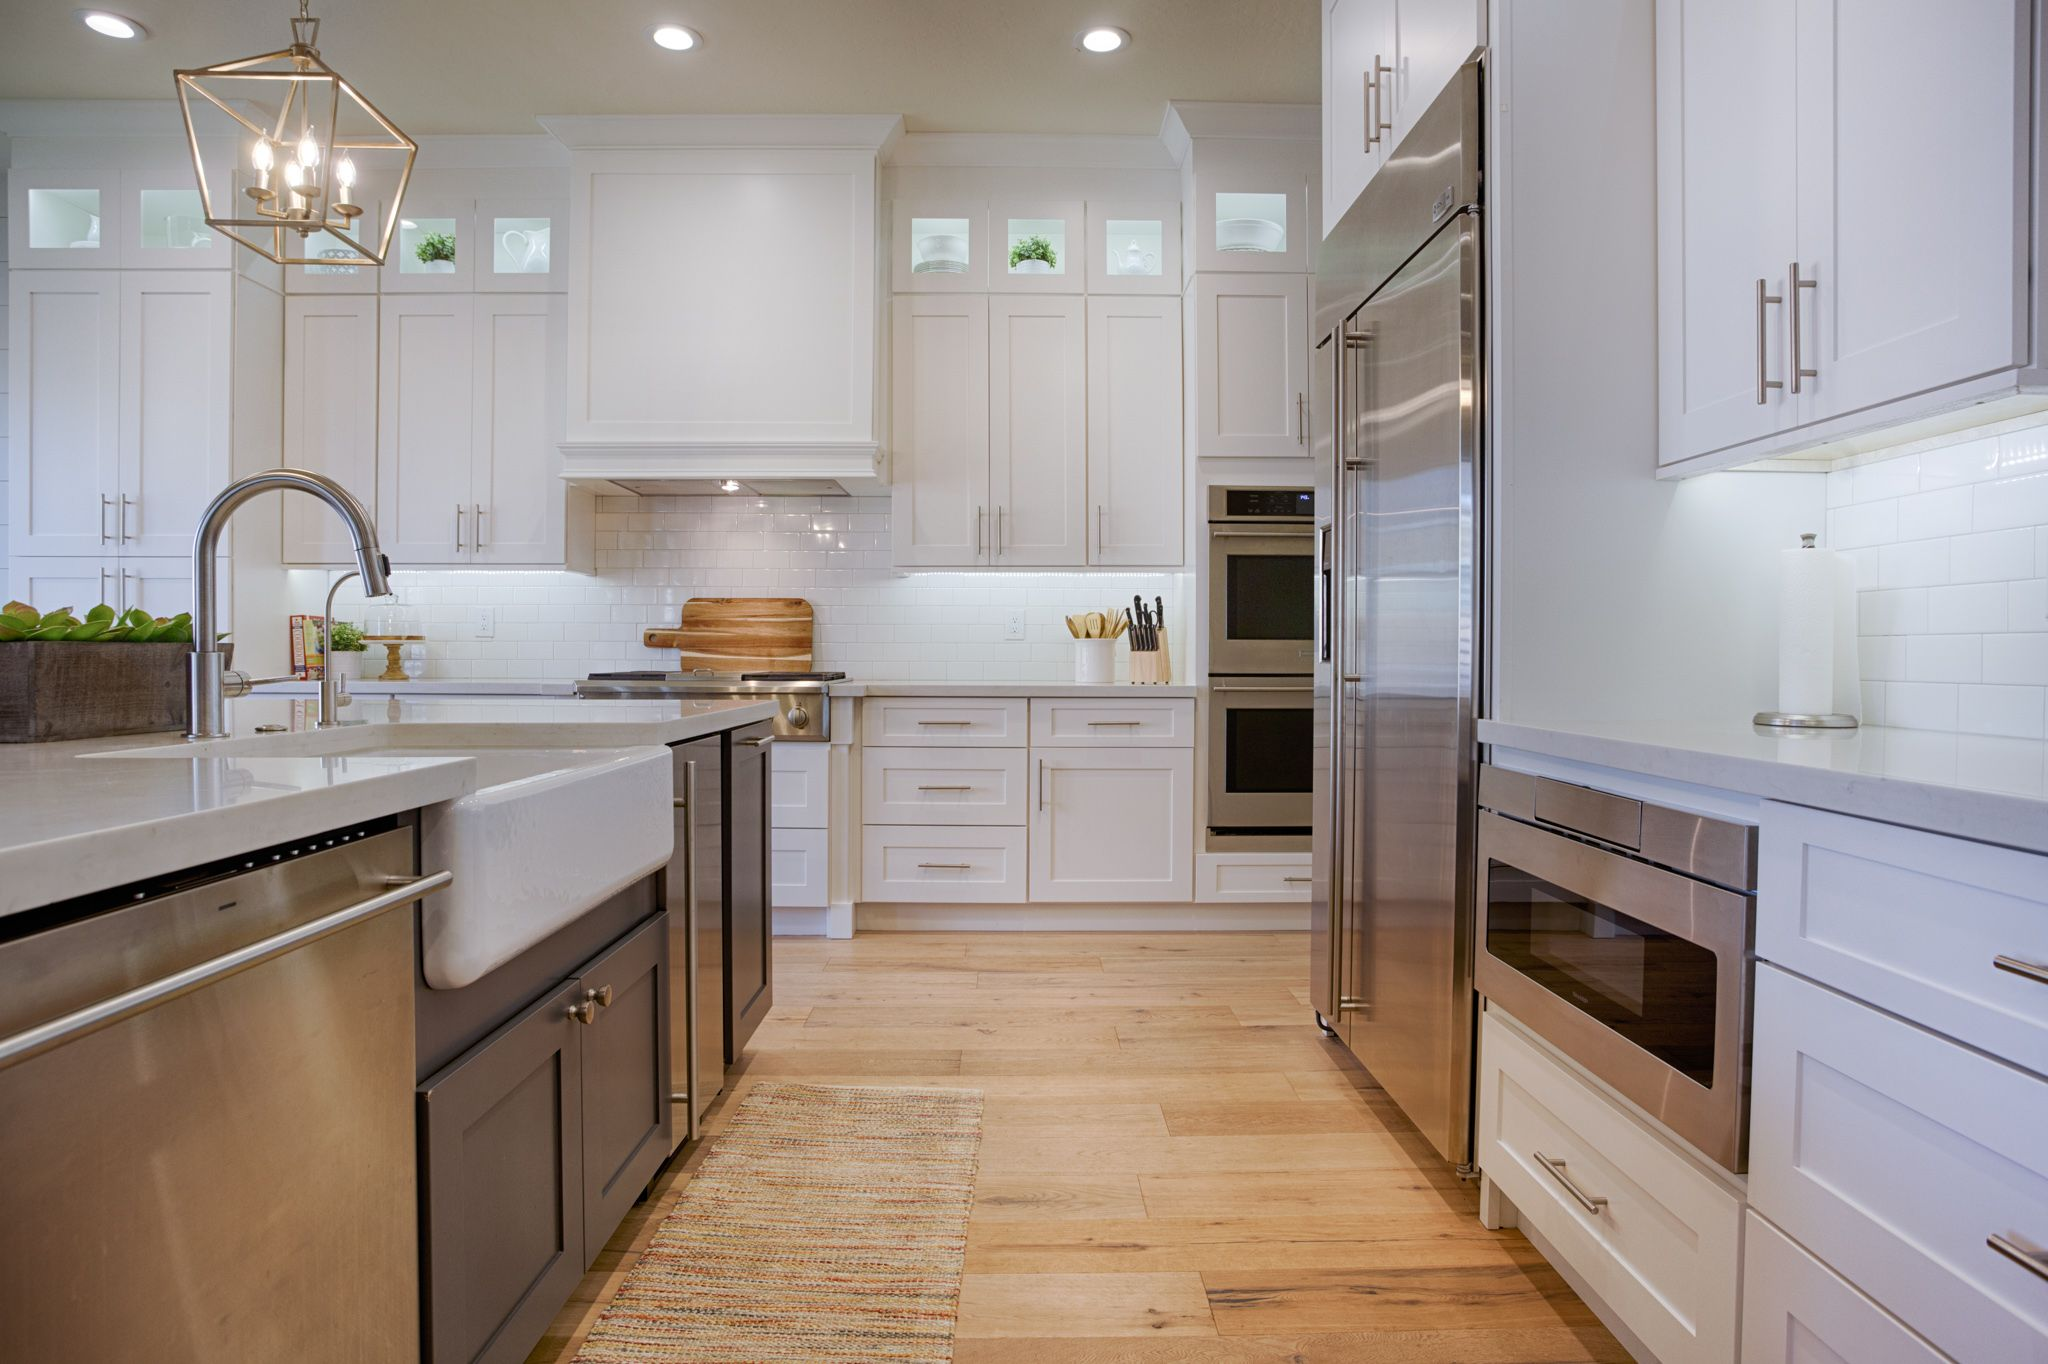 White Shaker Cabinets Gray Island And Light Wood Floorings Create Such A Soft Inviting Atmosphere In The Ki Custom Kitchen Cabinets Kitchen Cabinets Kitchen